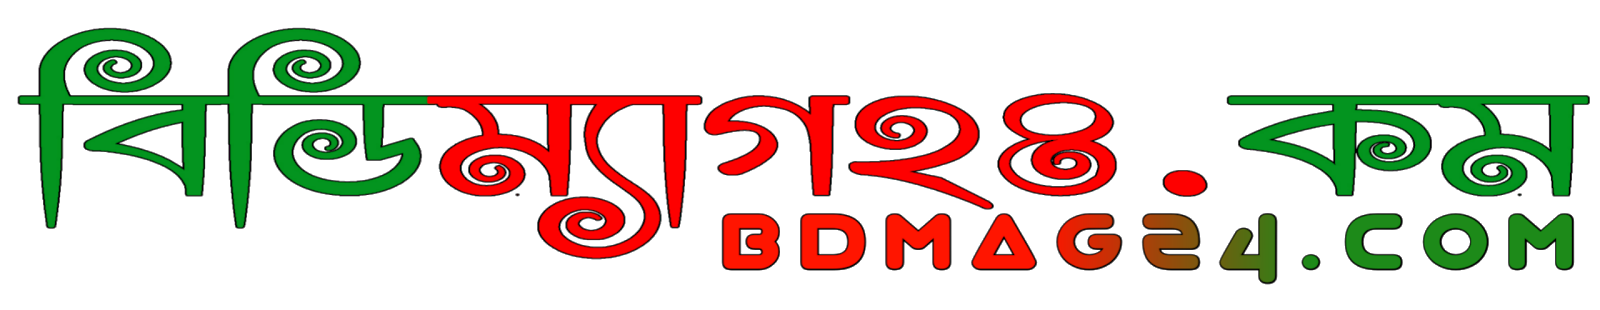 BDMag24.Com -  No 1 Magazine Site In Bangladesh